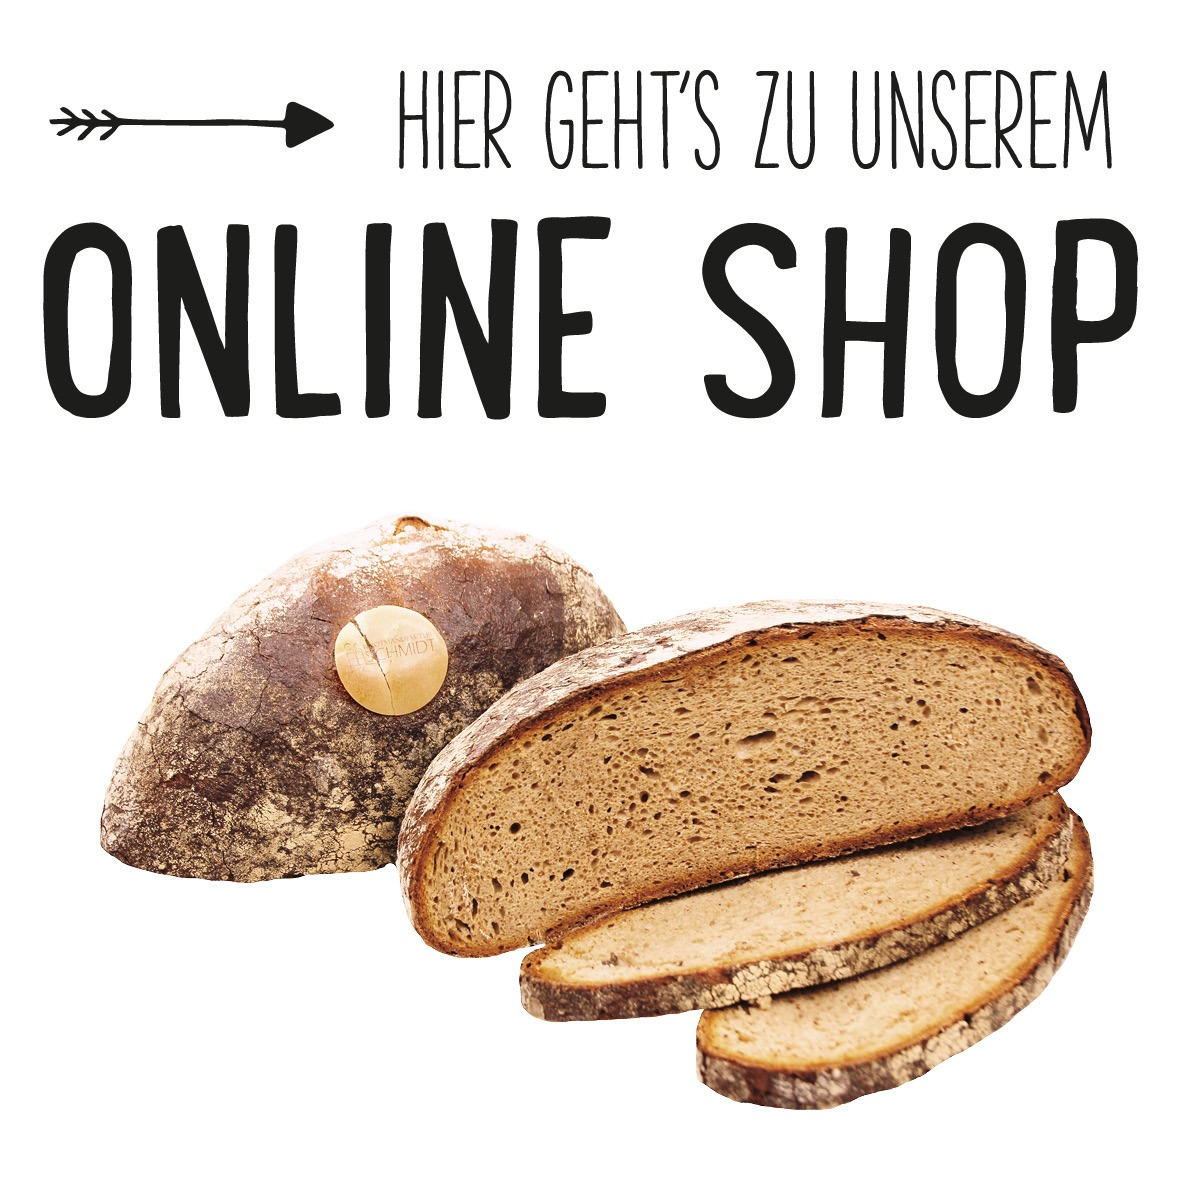 Online-Shop-Brotmanufaktur-Schmidt